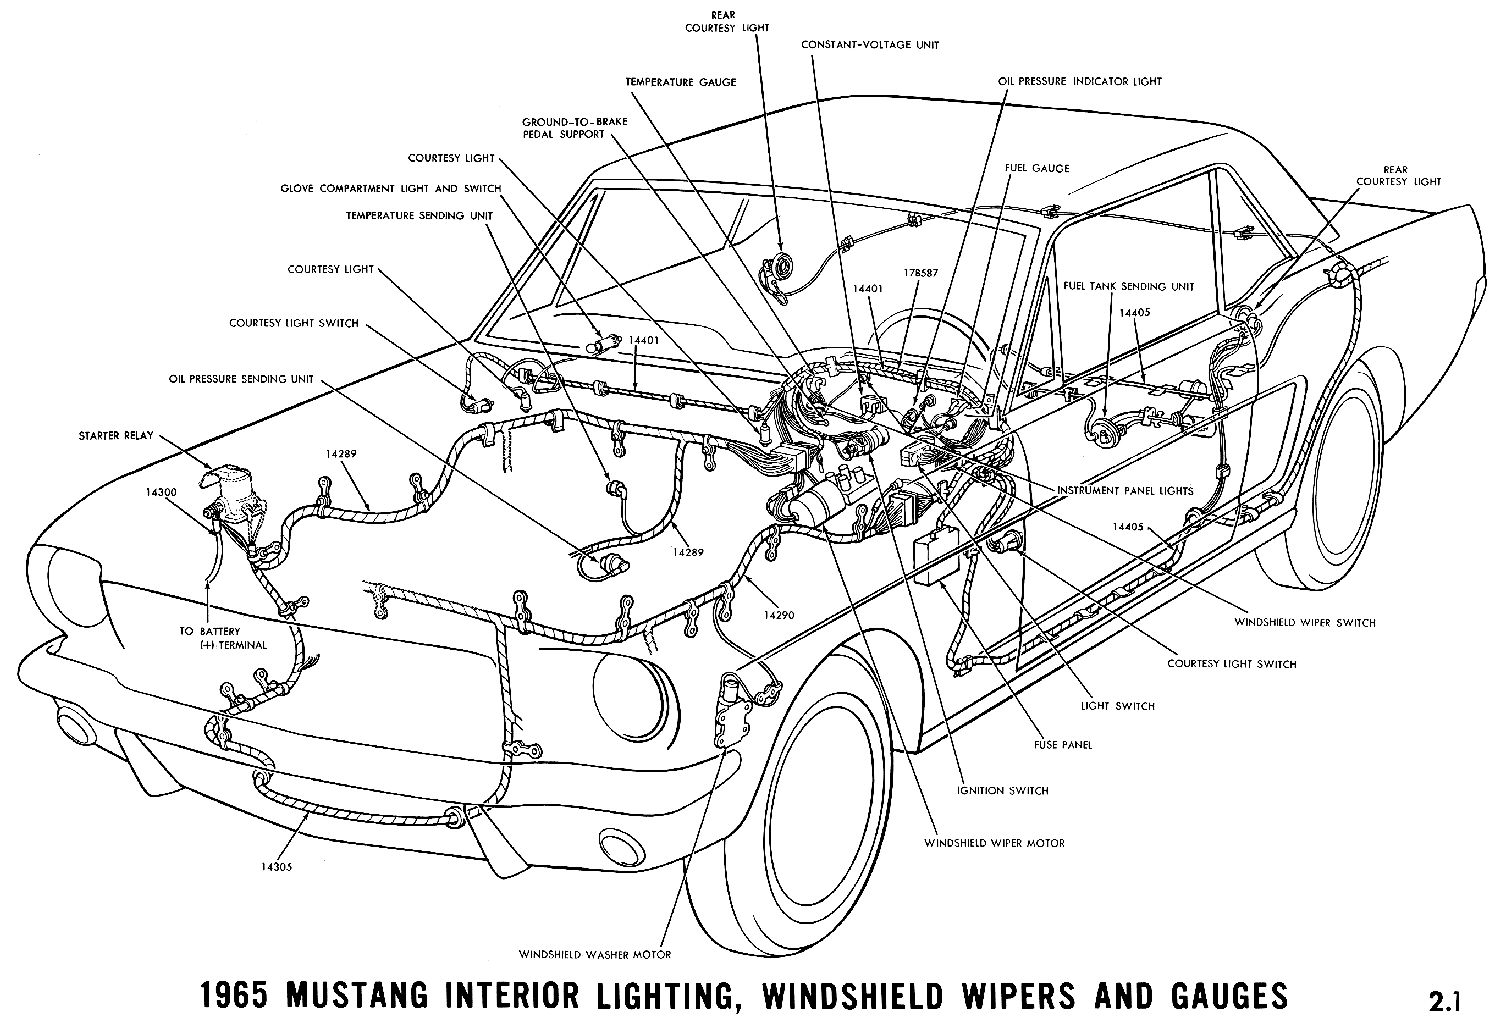 Alternator Wiring Diagram For 1965 Mustang - Great Installation Of on ford starter wiring diagram, 1966 ford backup light wiring diagram, 1966 ford ignition switch wiring diagram, 1966 ford f-250 wiring diagram, ford 3 wire alternator diagram, 1966 mustang color wiring diagram, 1966 ford truck wiring diagram, 1966 ford charging system diagram, ford truck alternator diagram, 1966 mustang horn wiring diagram, 1966 ford thunderbird wiring diagram, 66 mustang ignition wiring diagram, 1966 mustang engine wiring diagram, 67 mustang ignition wiring diagram, 1966 ford mustang alternator, ford one wire alternator diagram, 1996 mustang wiring diagram, 1966 ford galaxie wiring-diagram, 1966 mustang dash wiring diagram, 1966 ford fuel gauge diagram,